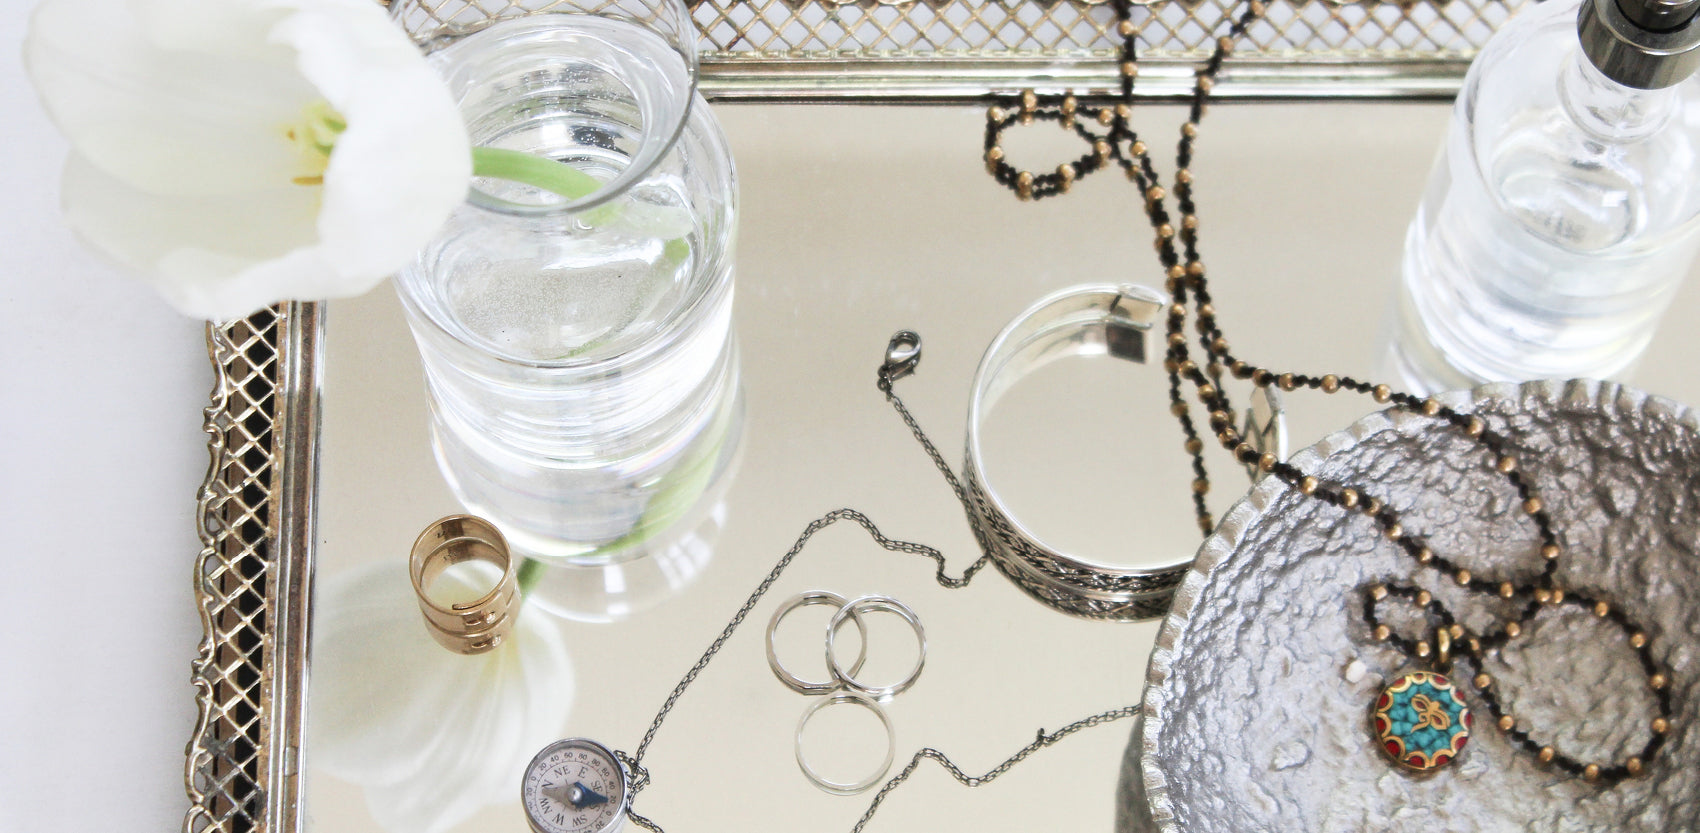 How To Wear A Pendant Necklace - Capsule Wardrobe Essentials